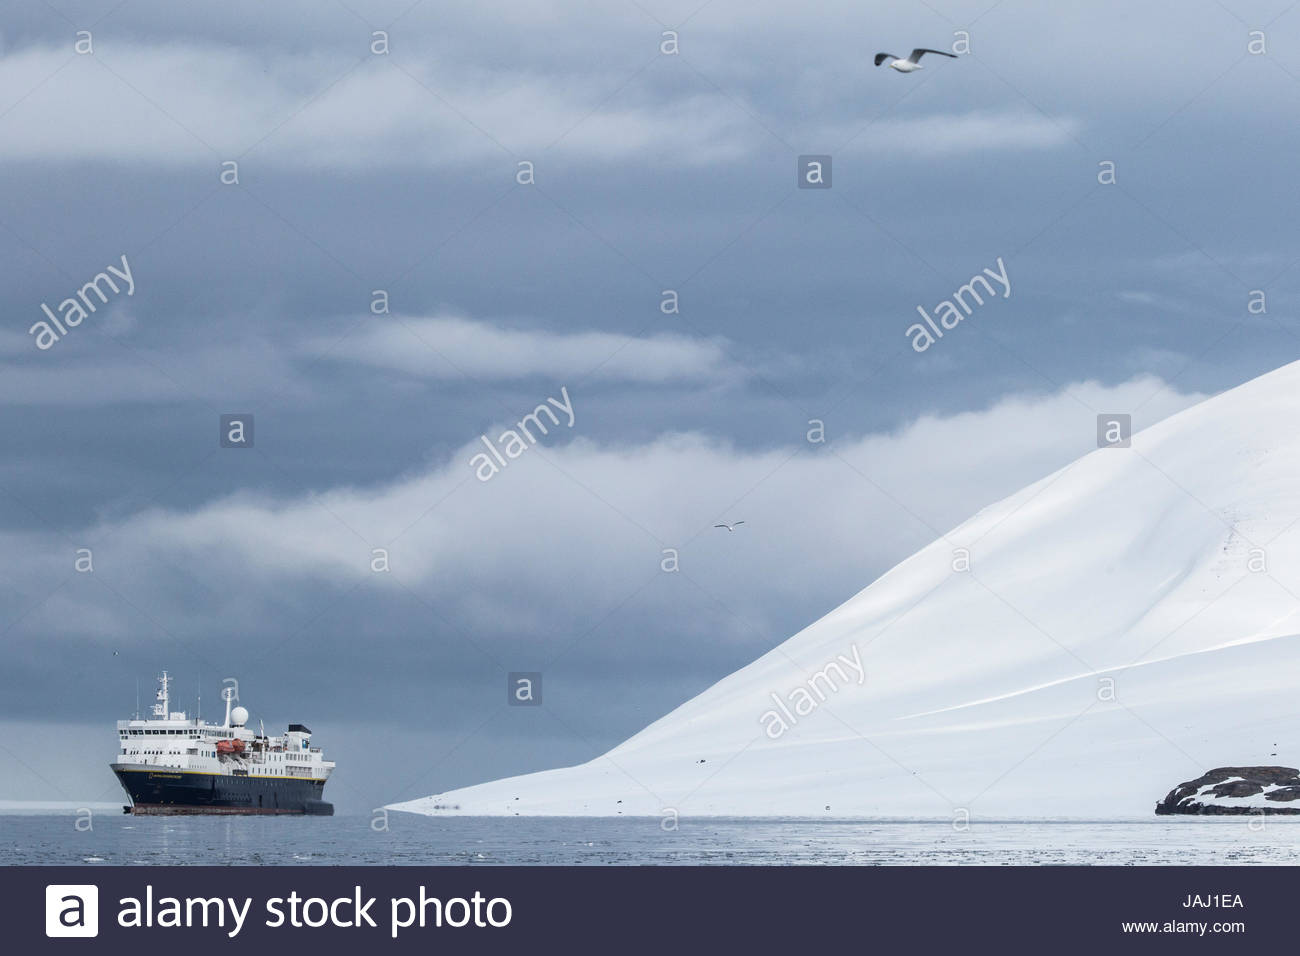 The expedition cruise ship National Geographic Explorer at anchor in Woodfjorden. - Stock Image